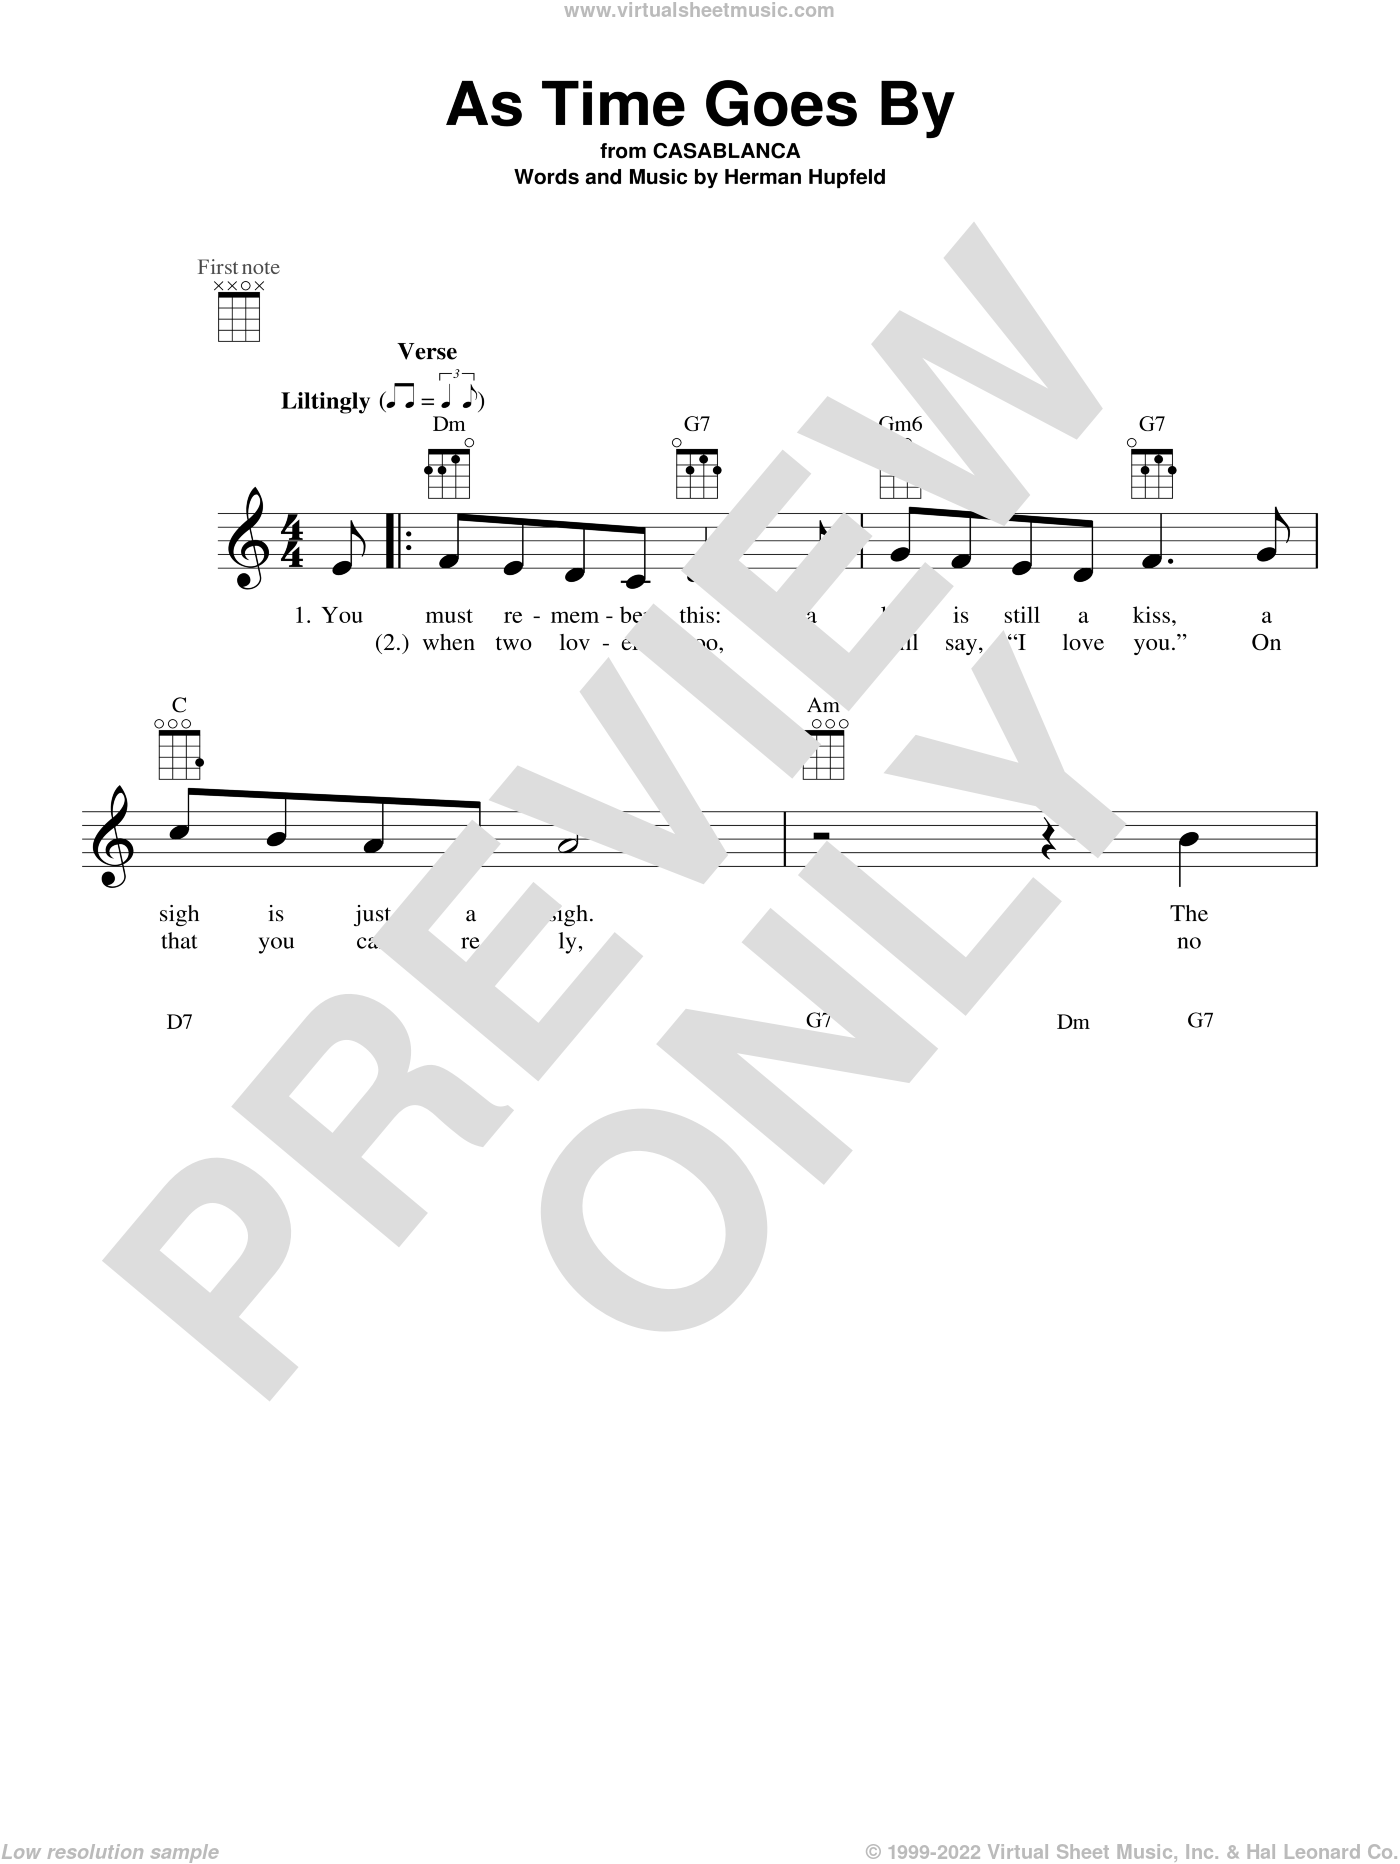 As Time Goes By sheet music for ukulele by Herman Hupfeld, Johnny Nash and Nilsson, intermediate skill level